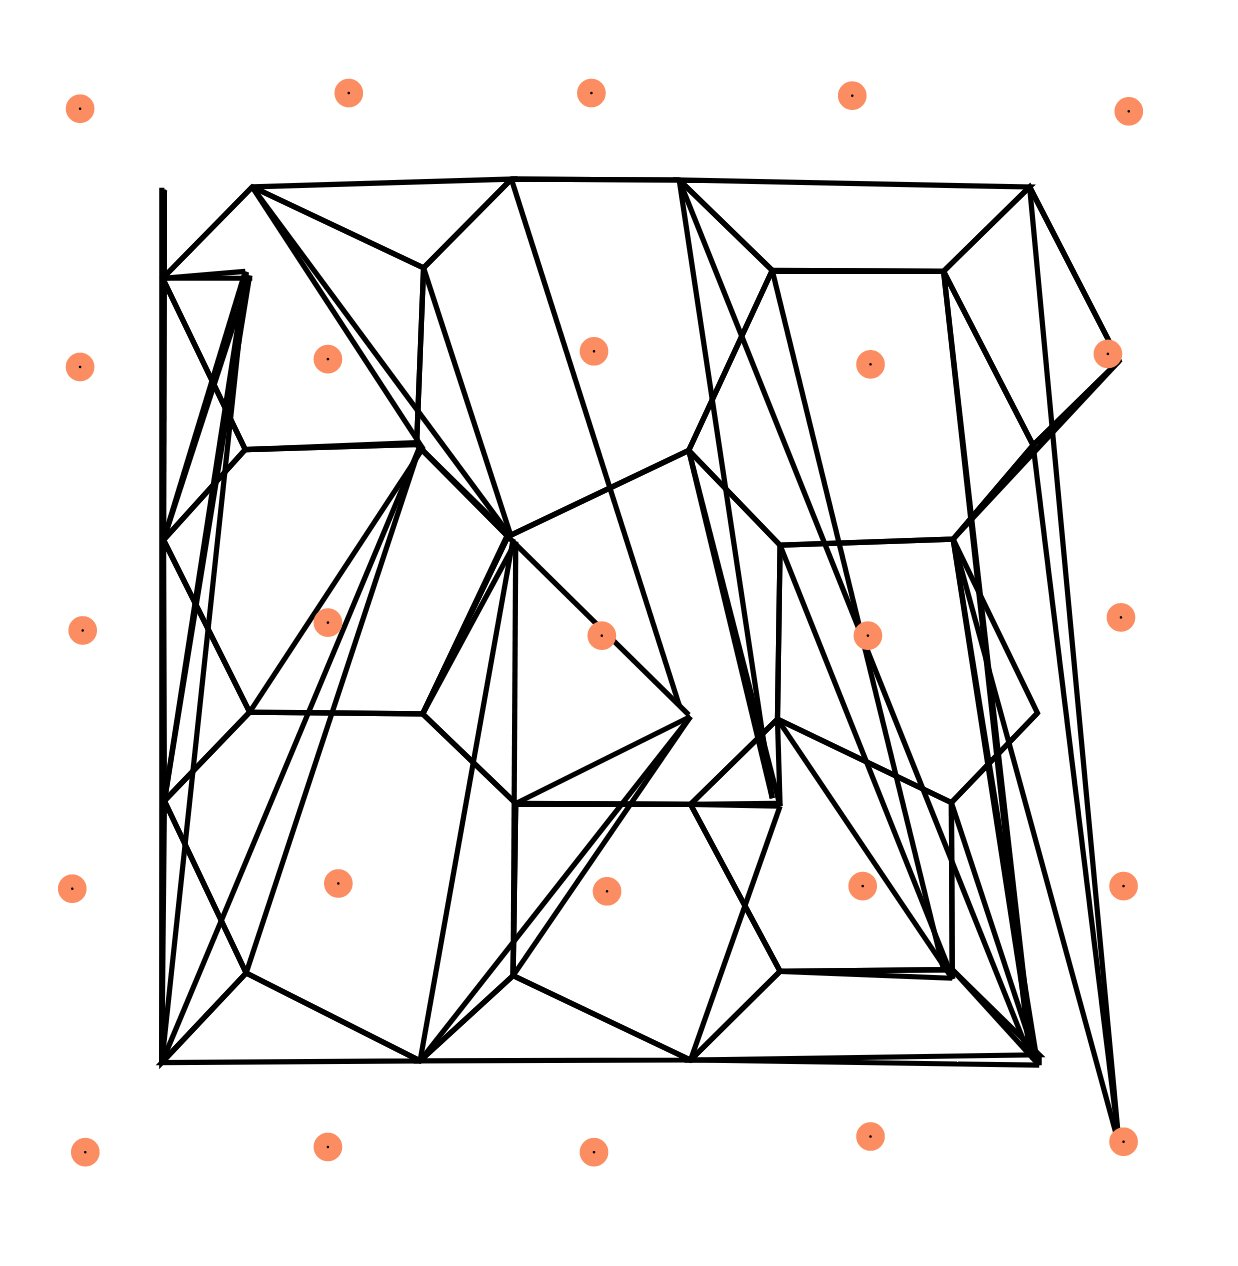 A grid of orange dots and some black lines between them. Something looks weird - the lines skew off in random directions!